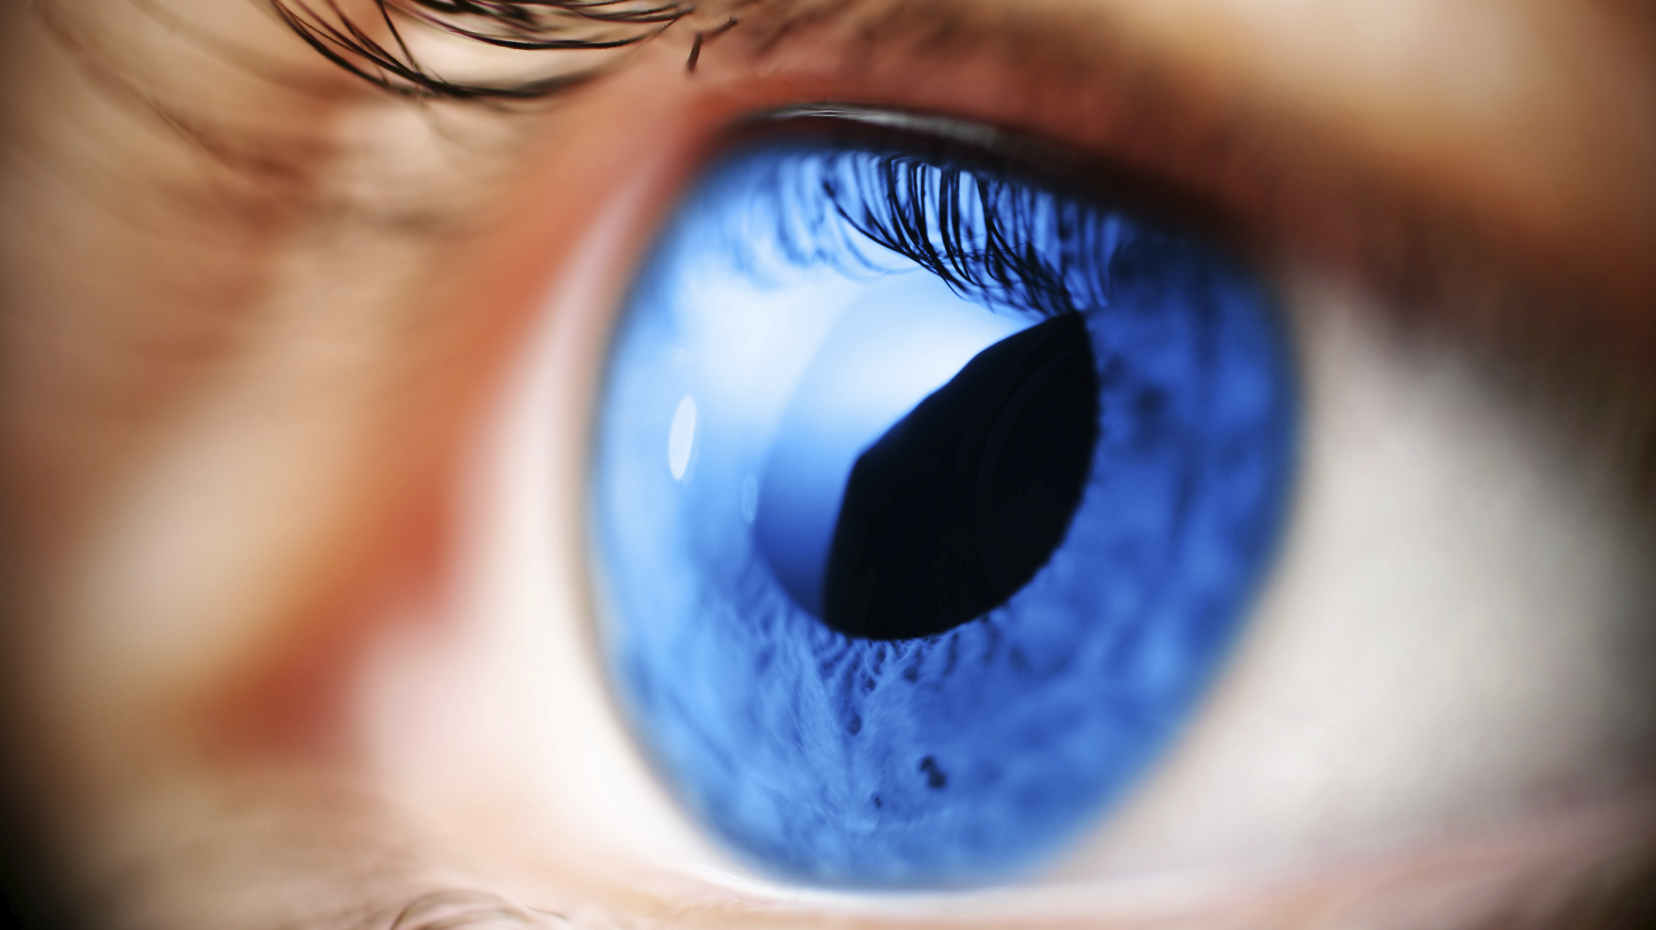 Using Birth Control Pills May Increase Women's Glaucoma Risk